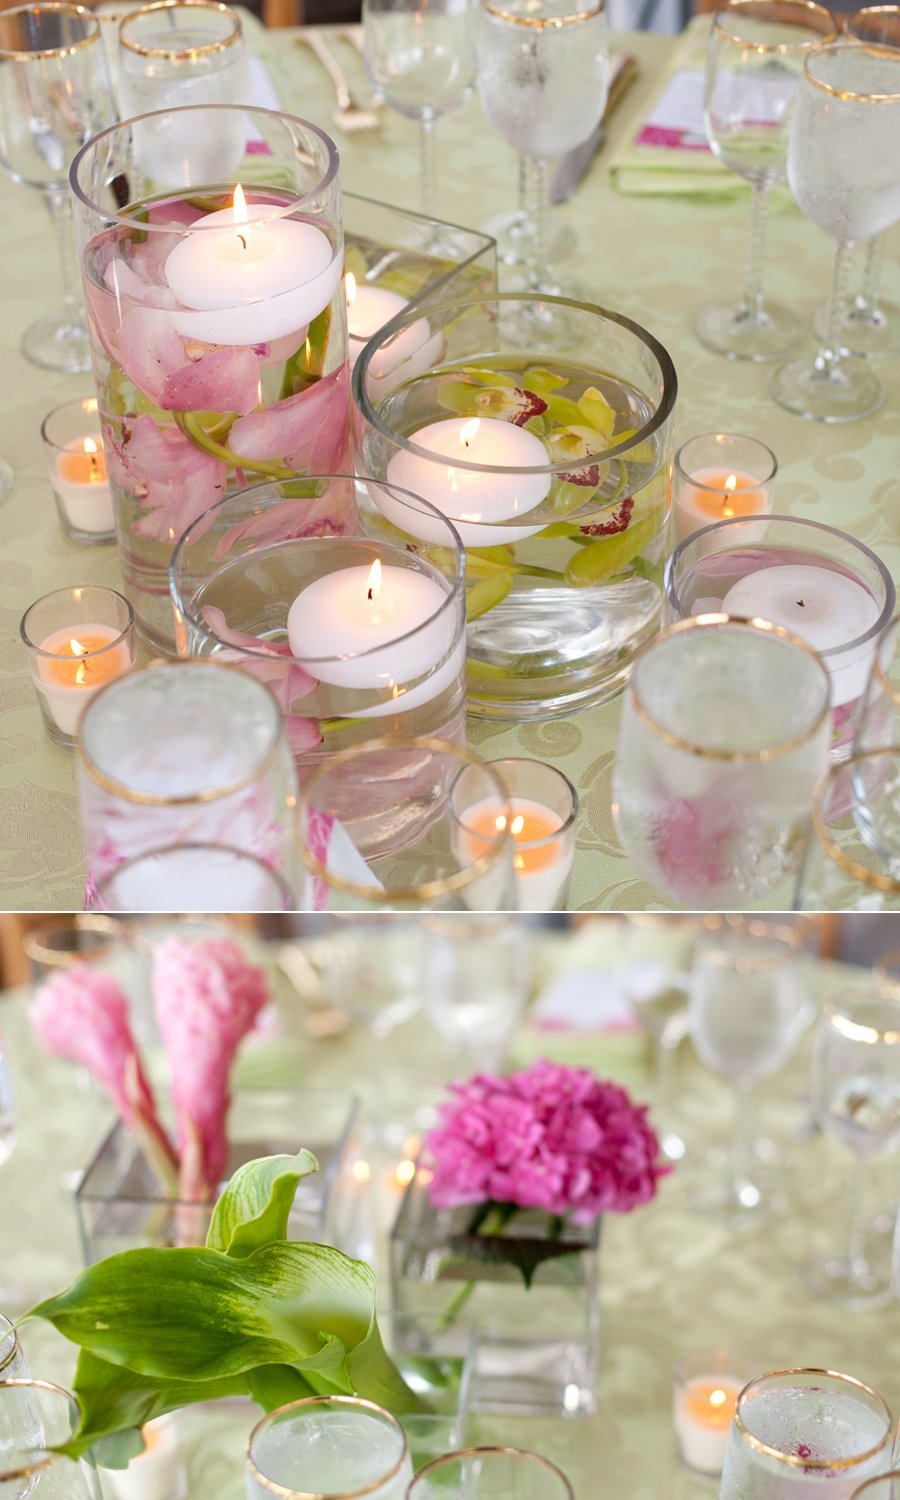 Wedding Flowers For Venue : Floating candles with tropical flowers for wedding